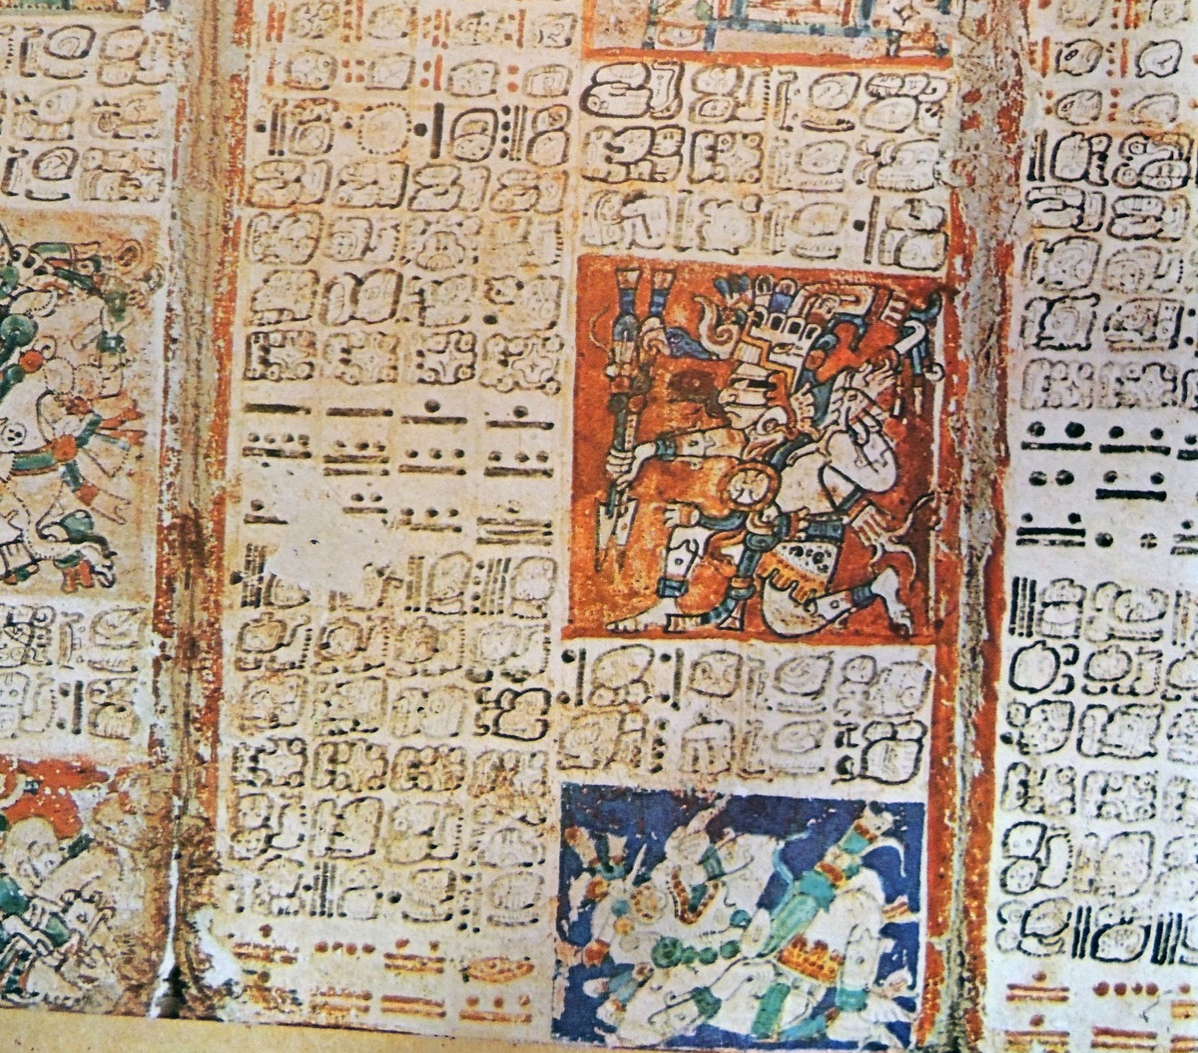 A pre-Columbian Maya book of the 11th Century of the Yucatecan Maya in Chichén Itzá.